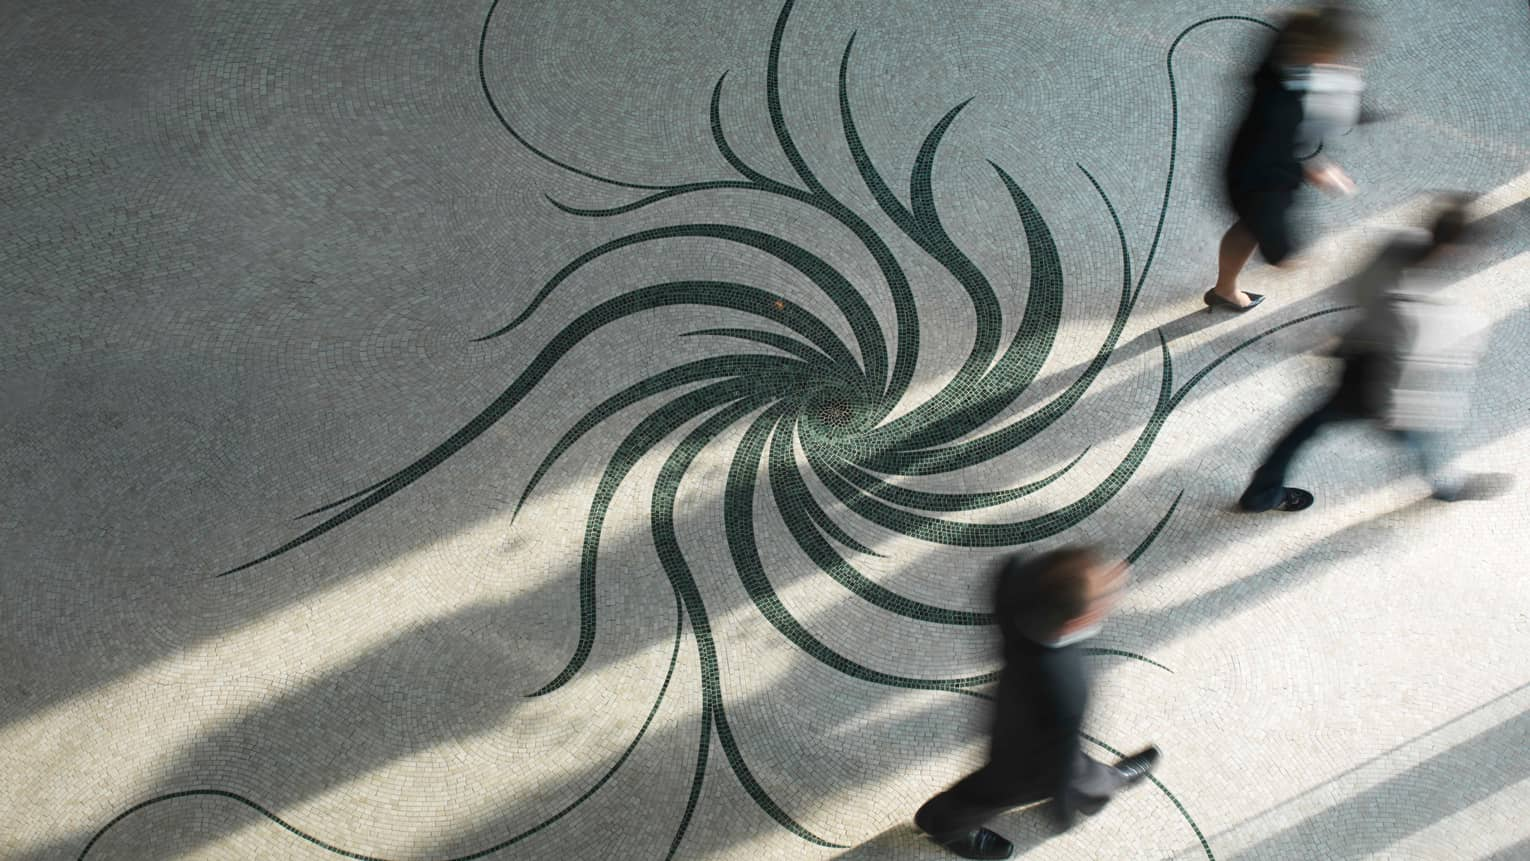 Aerial view of mosaic tiles in swirl patterns as people walk by